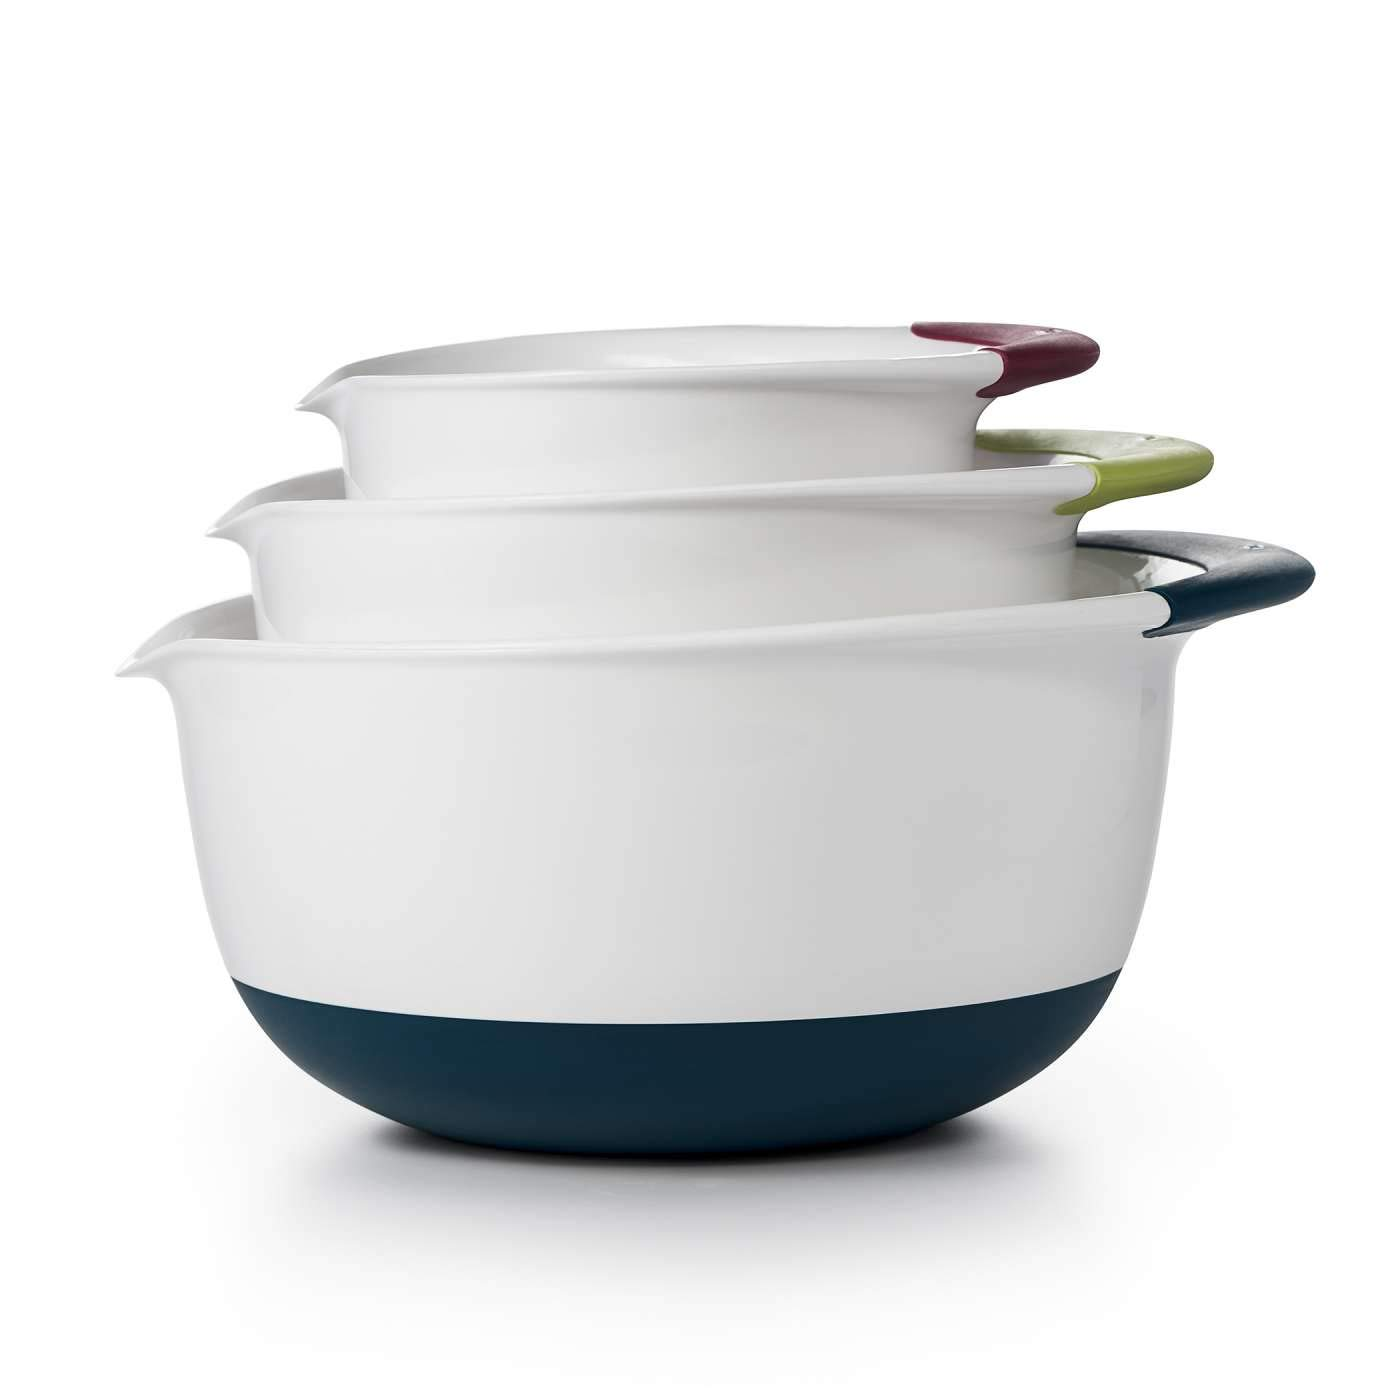 OXO Good Grips 3-Piece Mixing Bowl Set 1115580